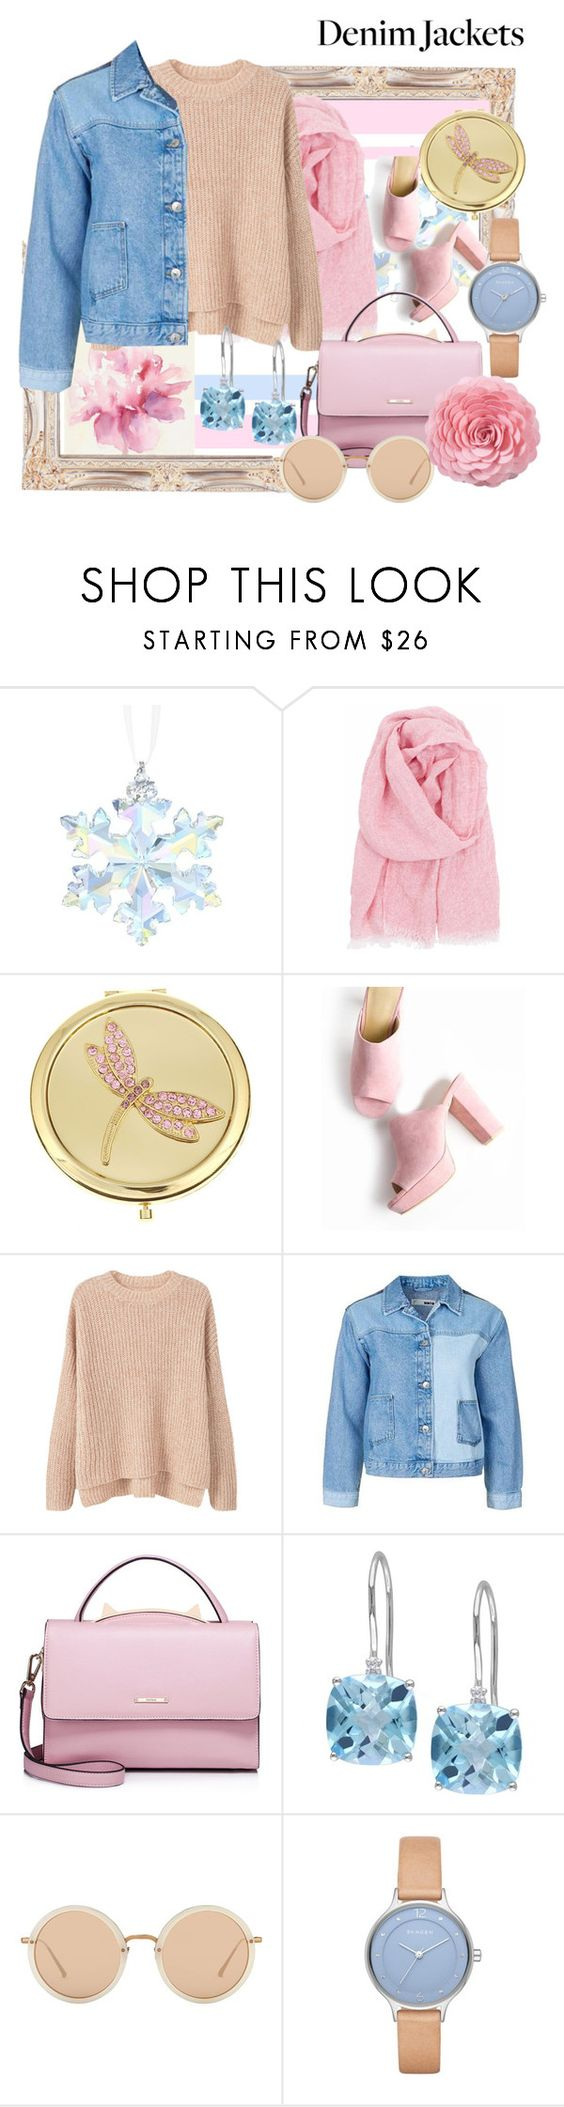 """DENIM"" by emmajanemoon ❤ liked on Polyvore featuring Swarovski, Lapuan Kankurit, Monet, MANGO, Topshop, WithChic, Linda Farrow, Skagen and Saro"